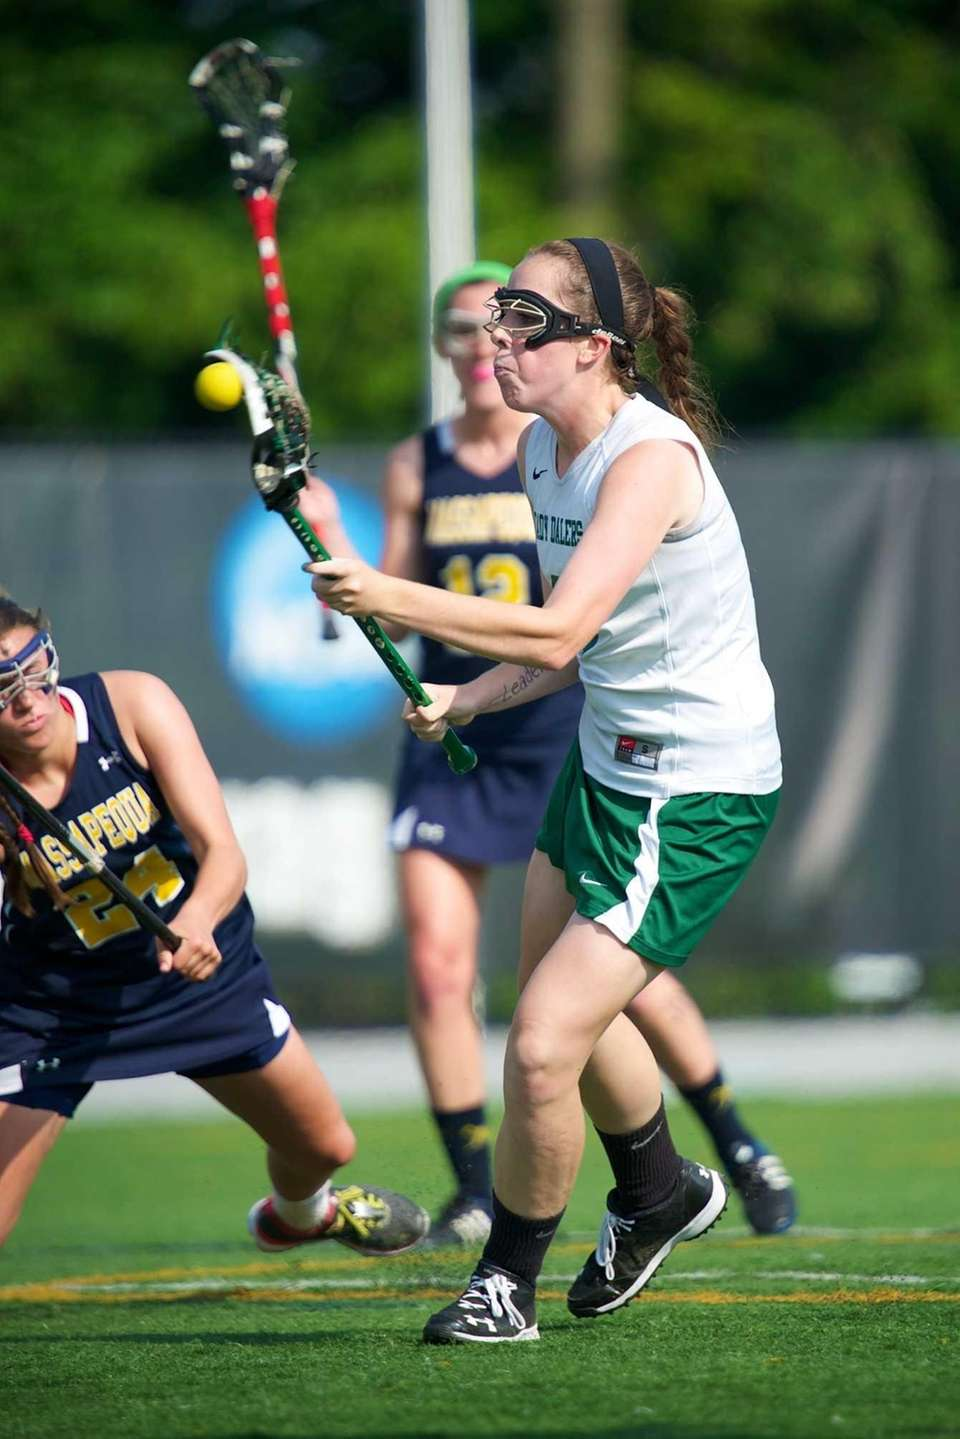 Farmingdale attacker Tara Wahl scores a goal in